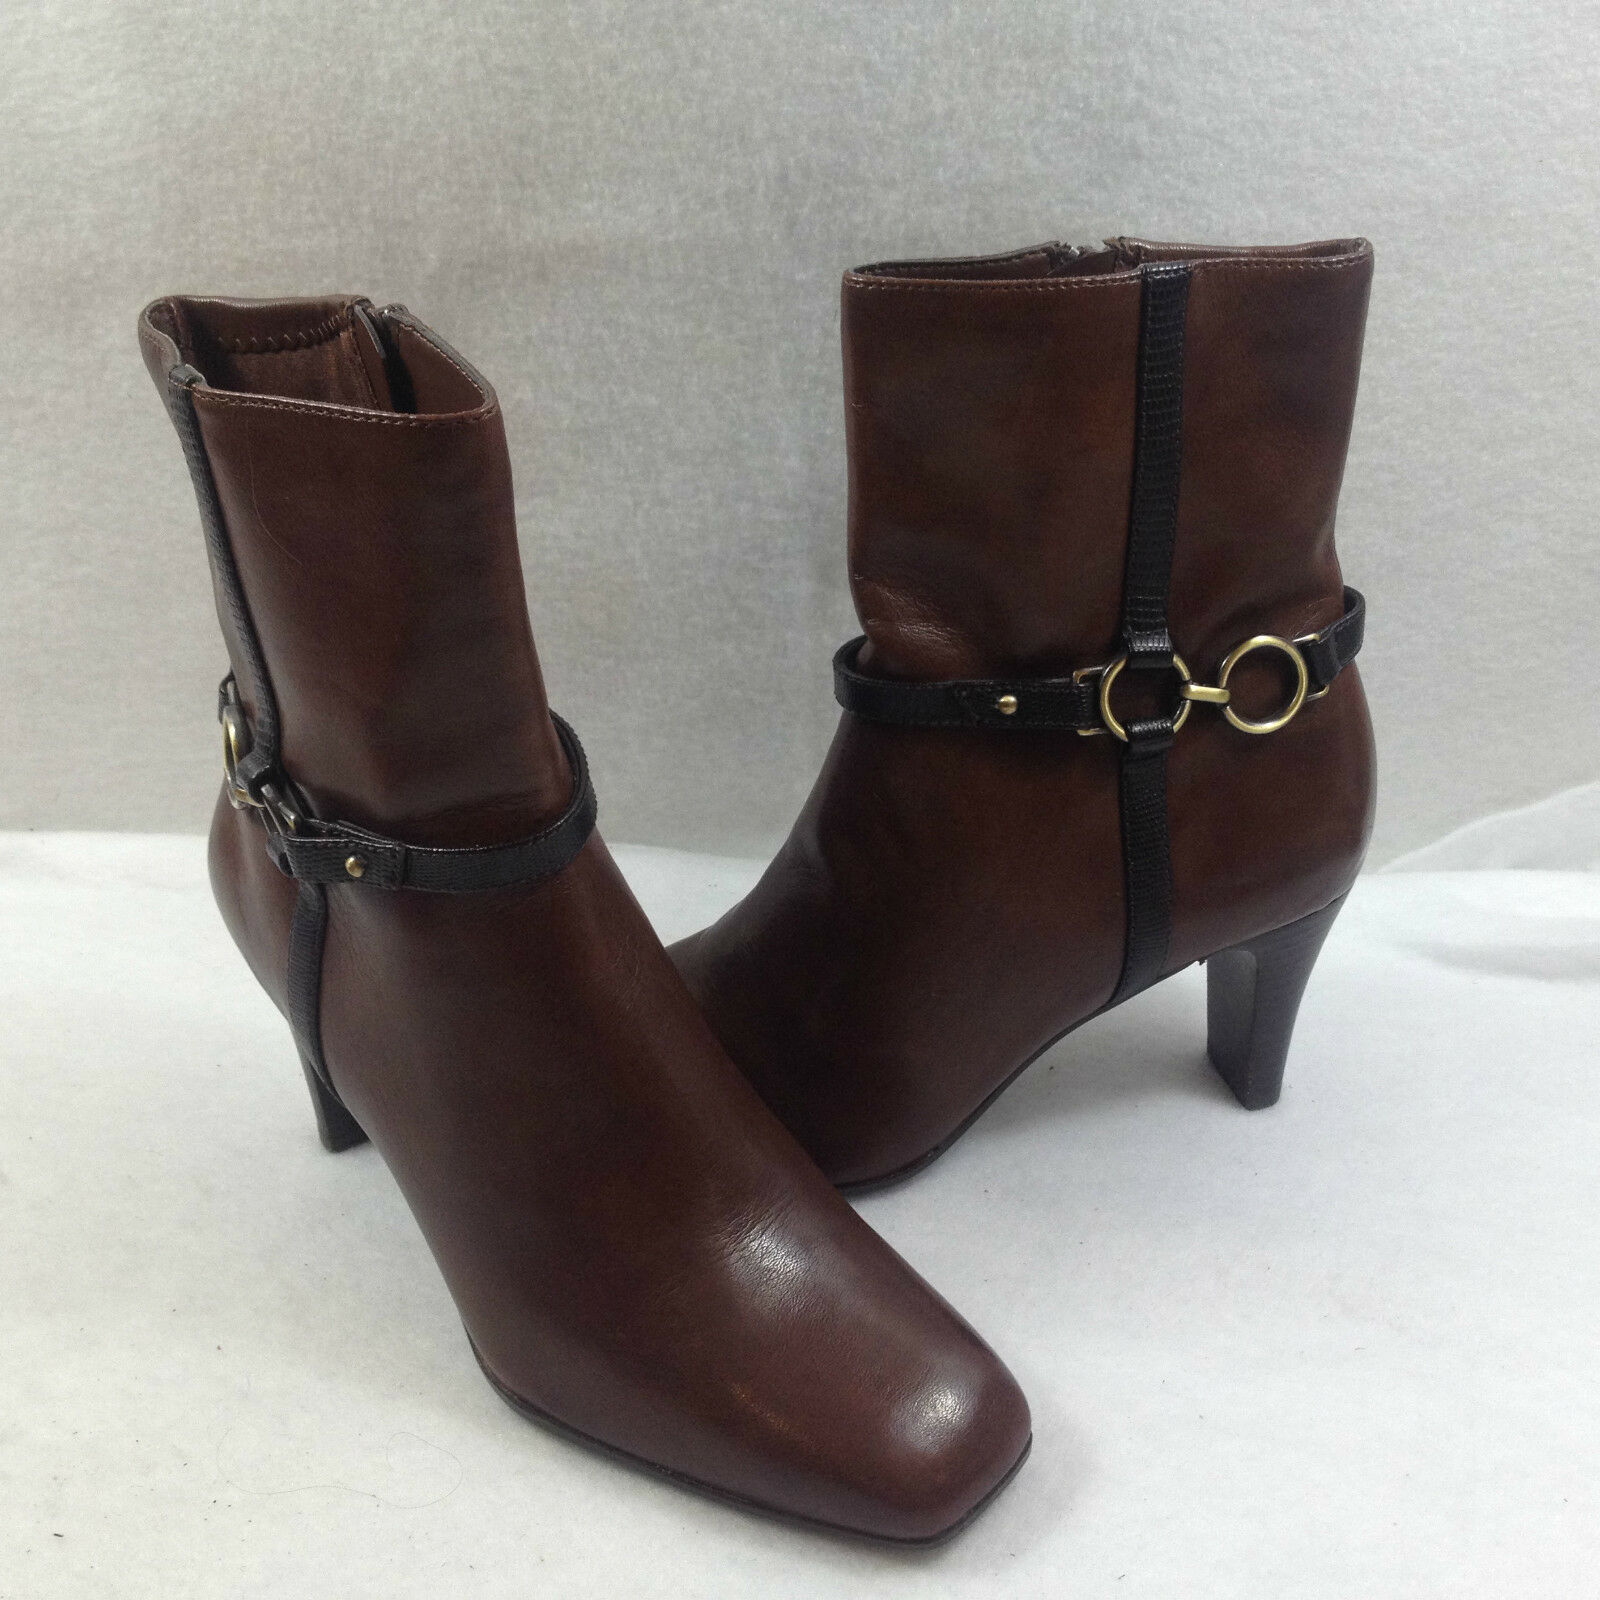 Liz Claiborne Side Zip Brown Ankle Boots Womens Size 6 M